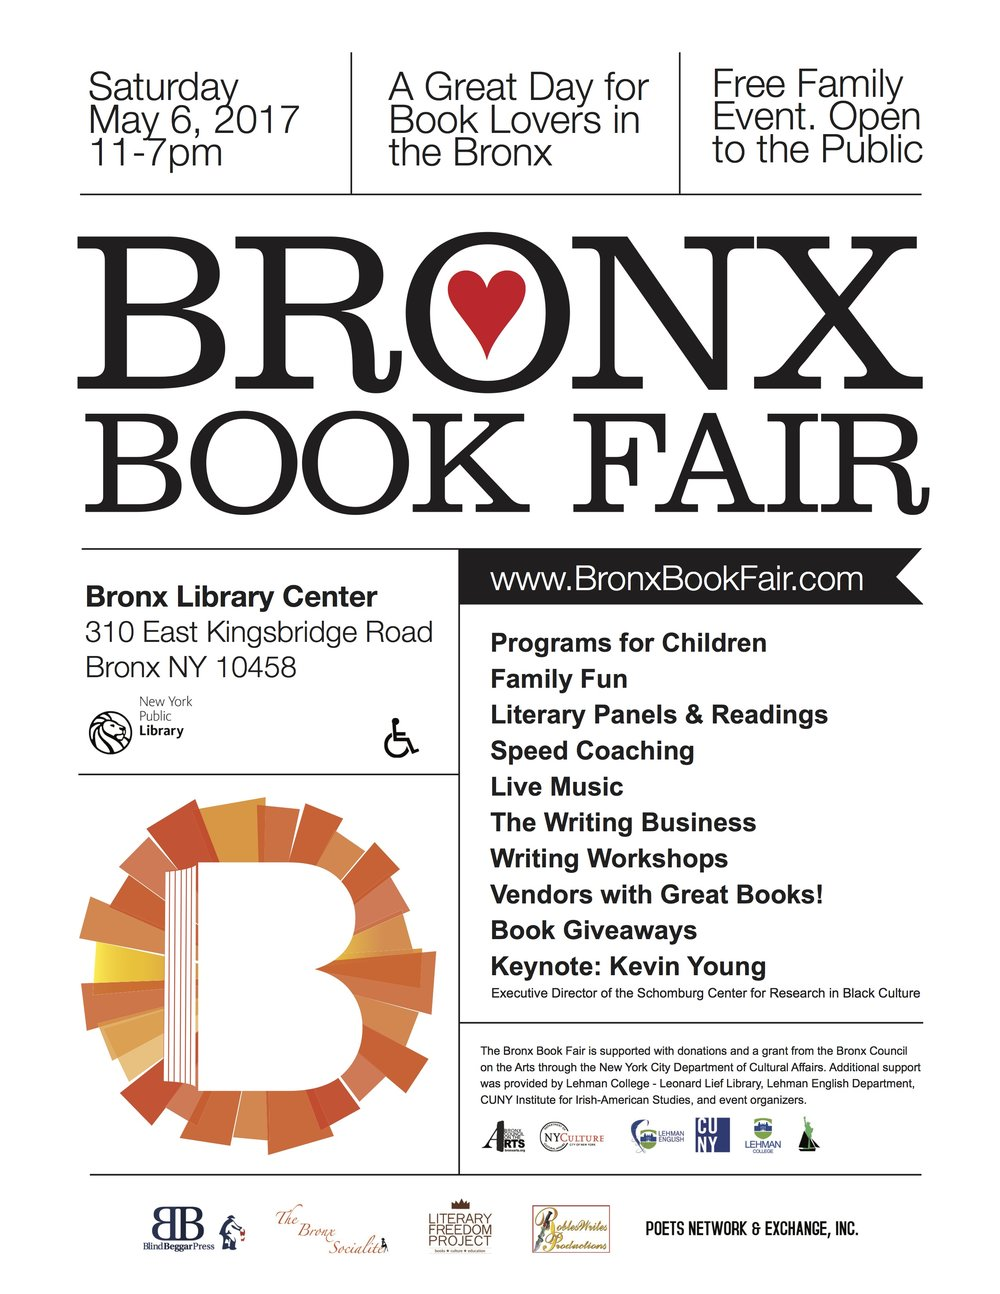 Bronx Book Fair - May 6, 2017 - 10am || Bronx Library CenterRole: Workshop Organizer and PresenterZine Publishing and Beyond - Learn different ways of self-publishing, and walk away with ideas on how to create, print, and distribute your own publication.  Faciliators: Margot Terc, Ana Maria Hoffman, and Tammy Lopez.